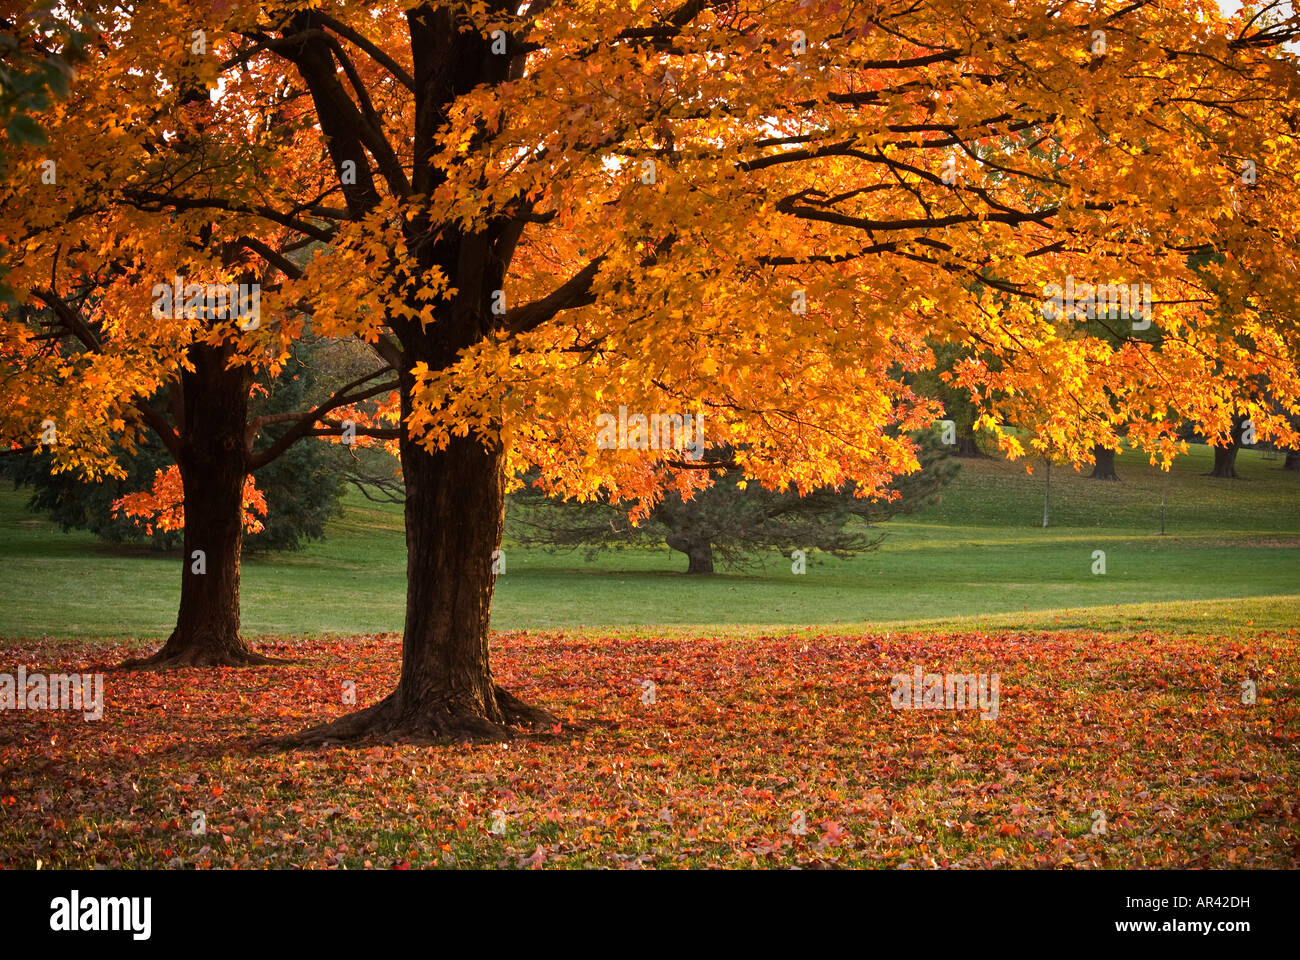 Maple tress in Loose Park - Stock Image